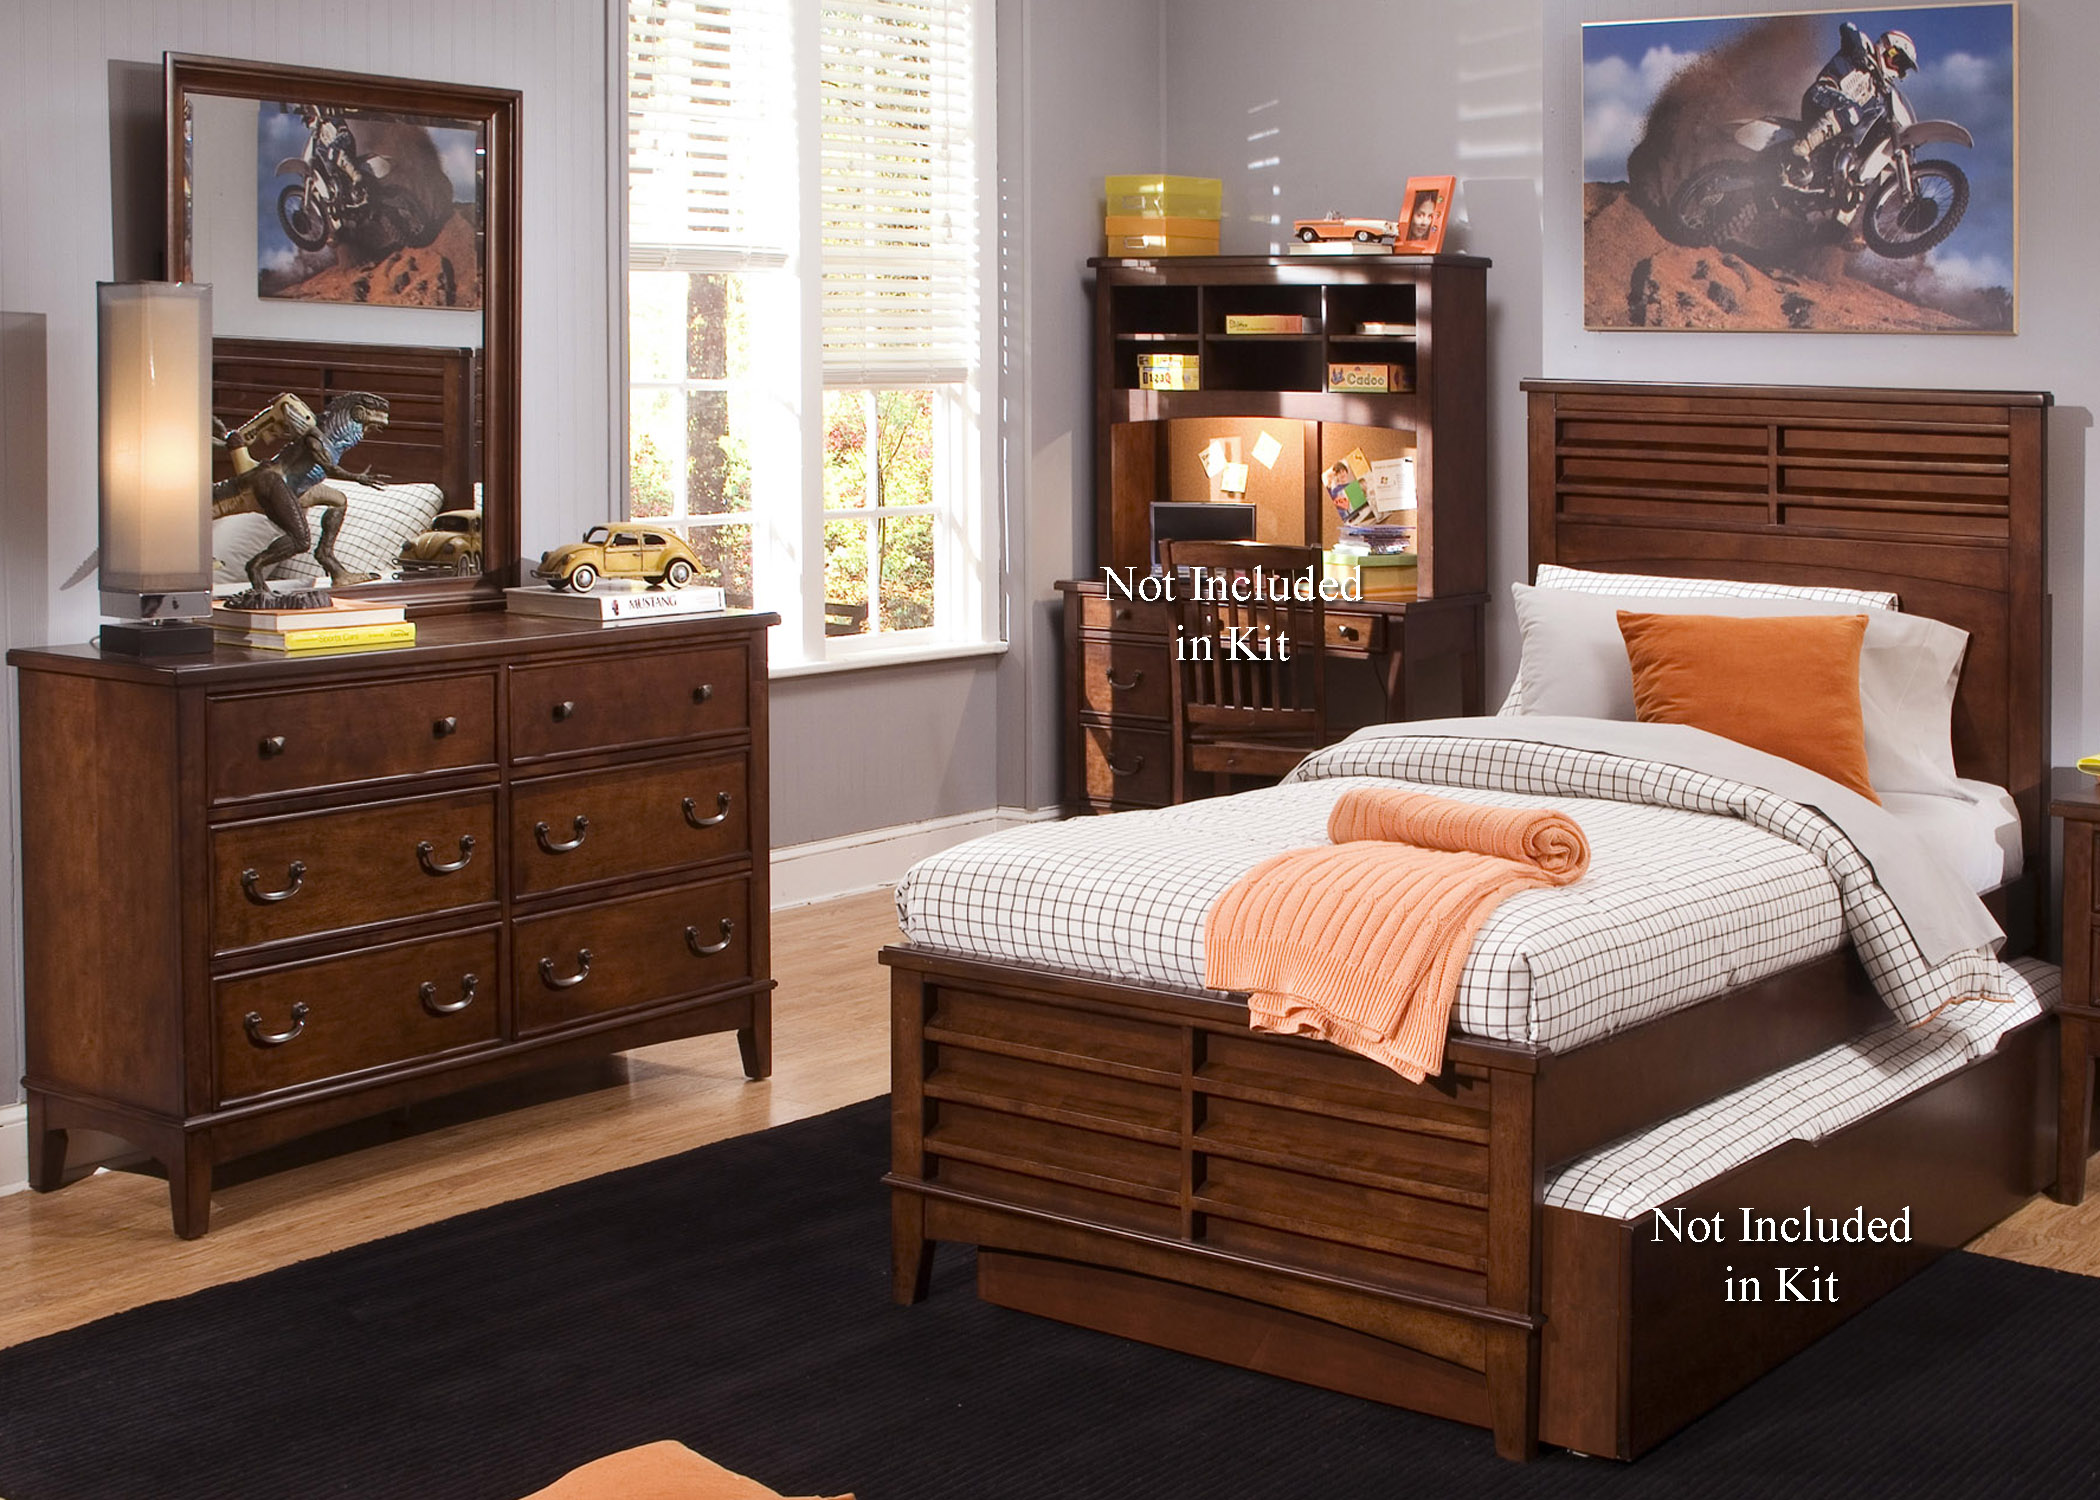 Liberty Furniture Chelsea Square Youth Bedroom Group - Item Number: 628-YBR-FPBDM